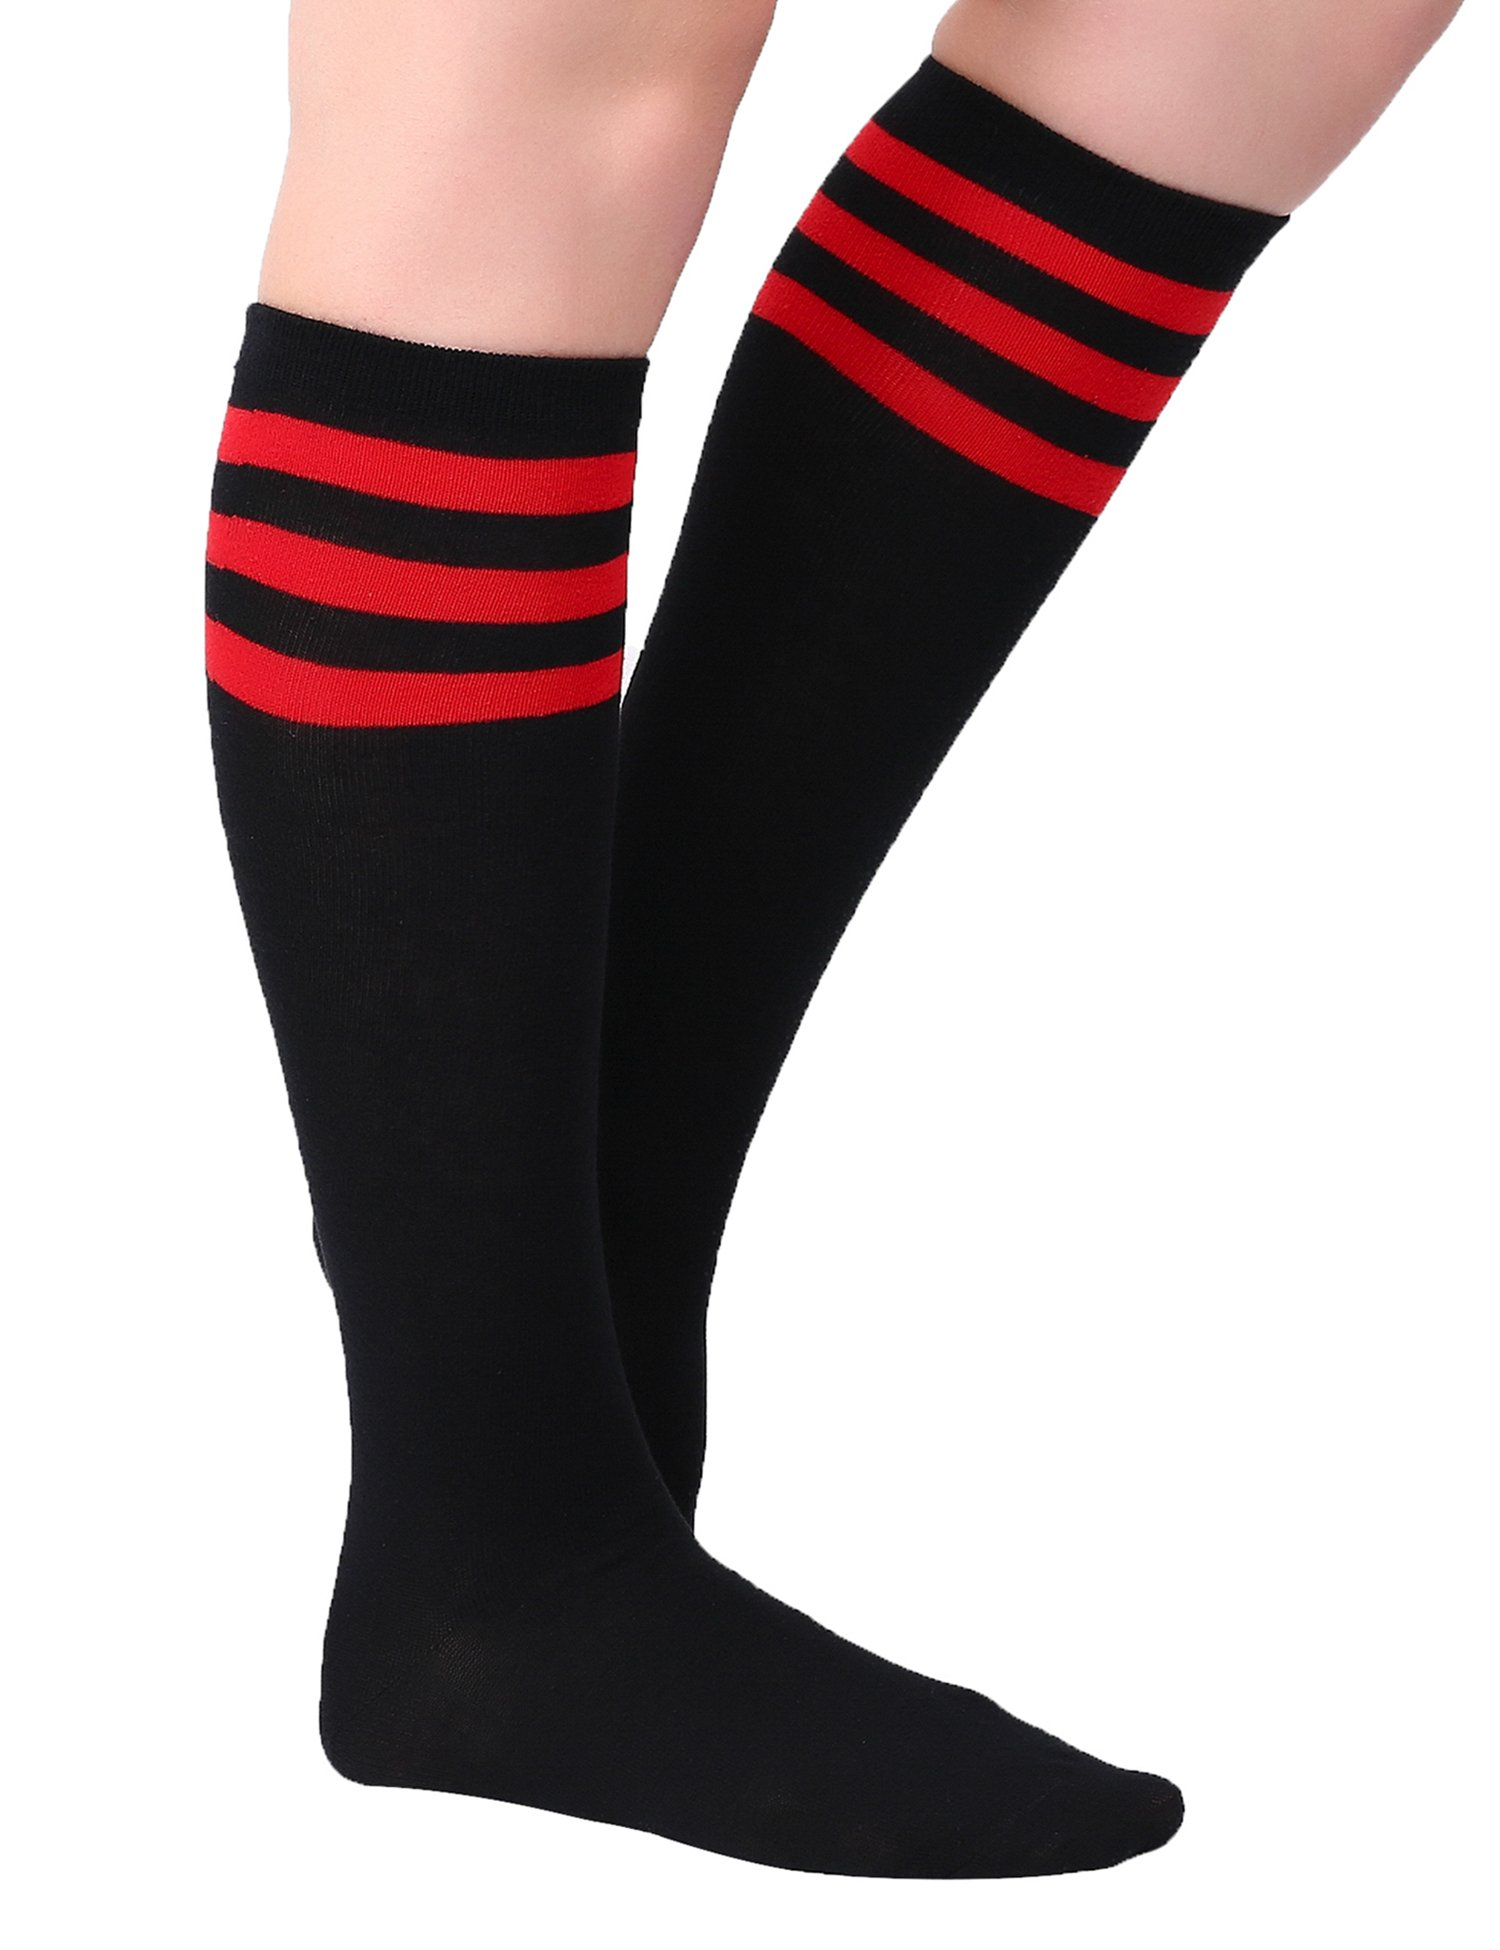 Joulli Women's Casual Stripe Knee High Socks, Black 3 Pairs, One Size by Joulli (Image #4)